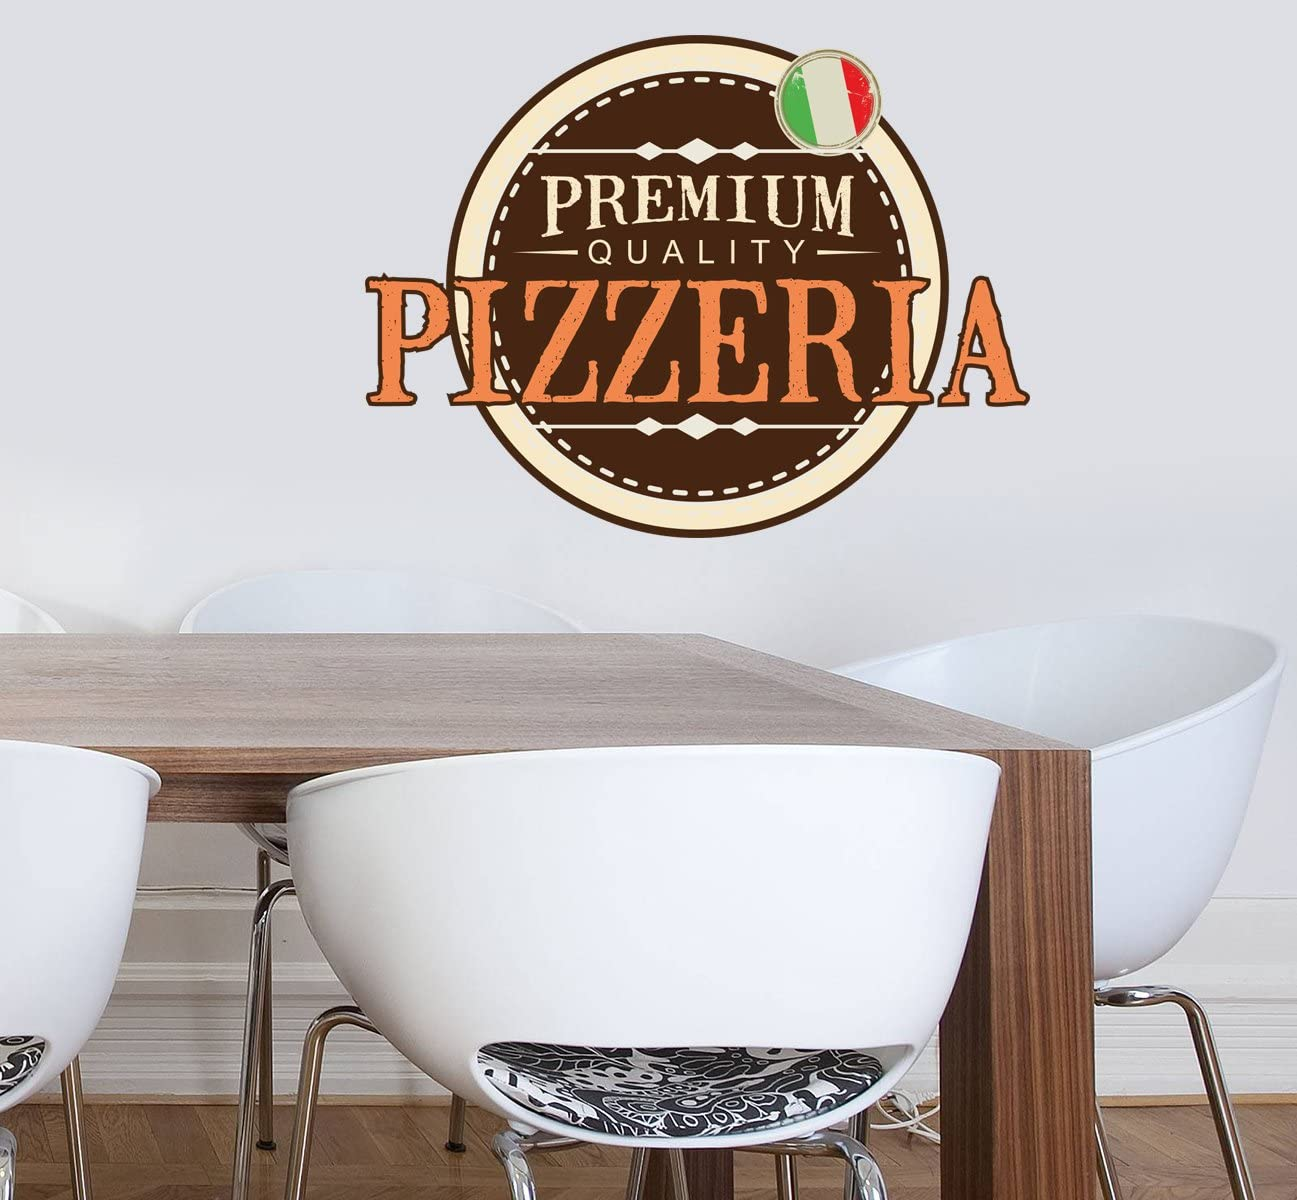 ced853 Full Color Wall Decal Sticker Pizza Food Cafe Pizzeria Restaurant